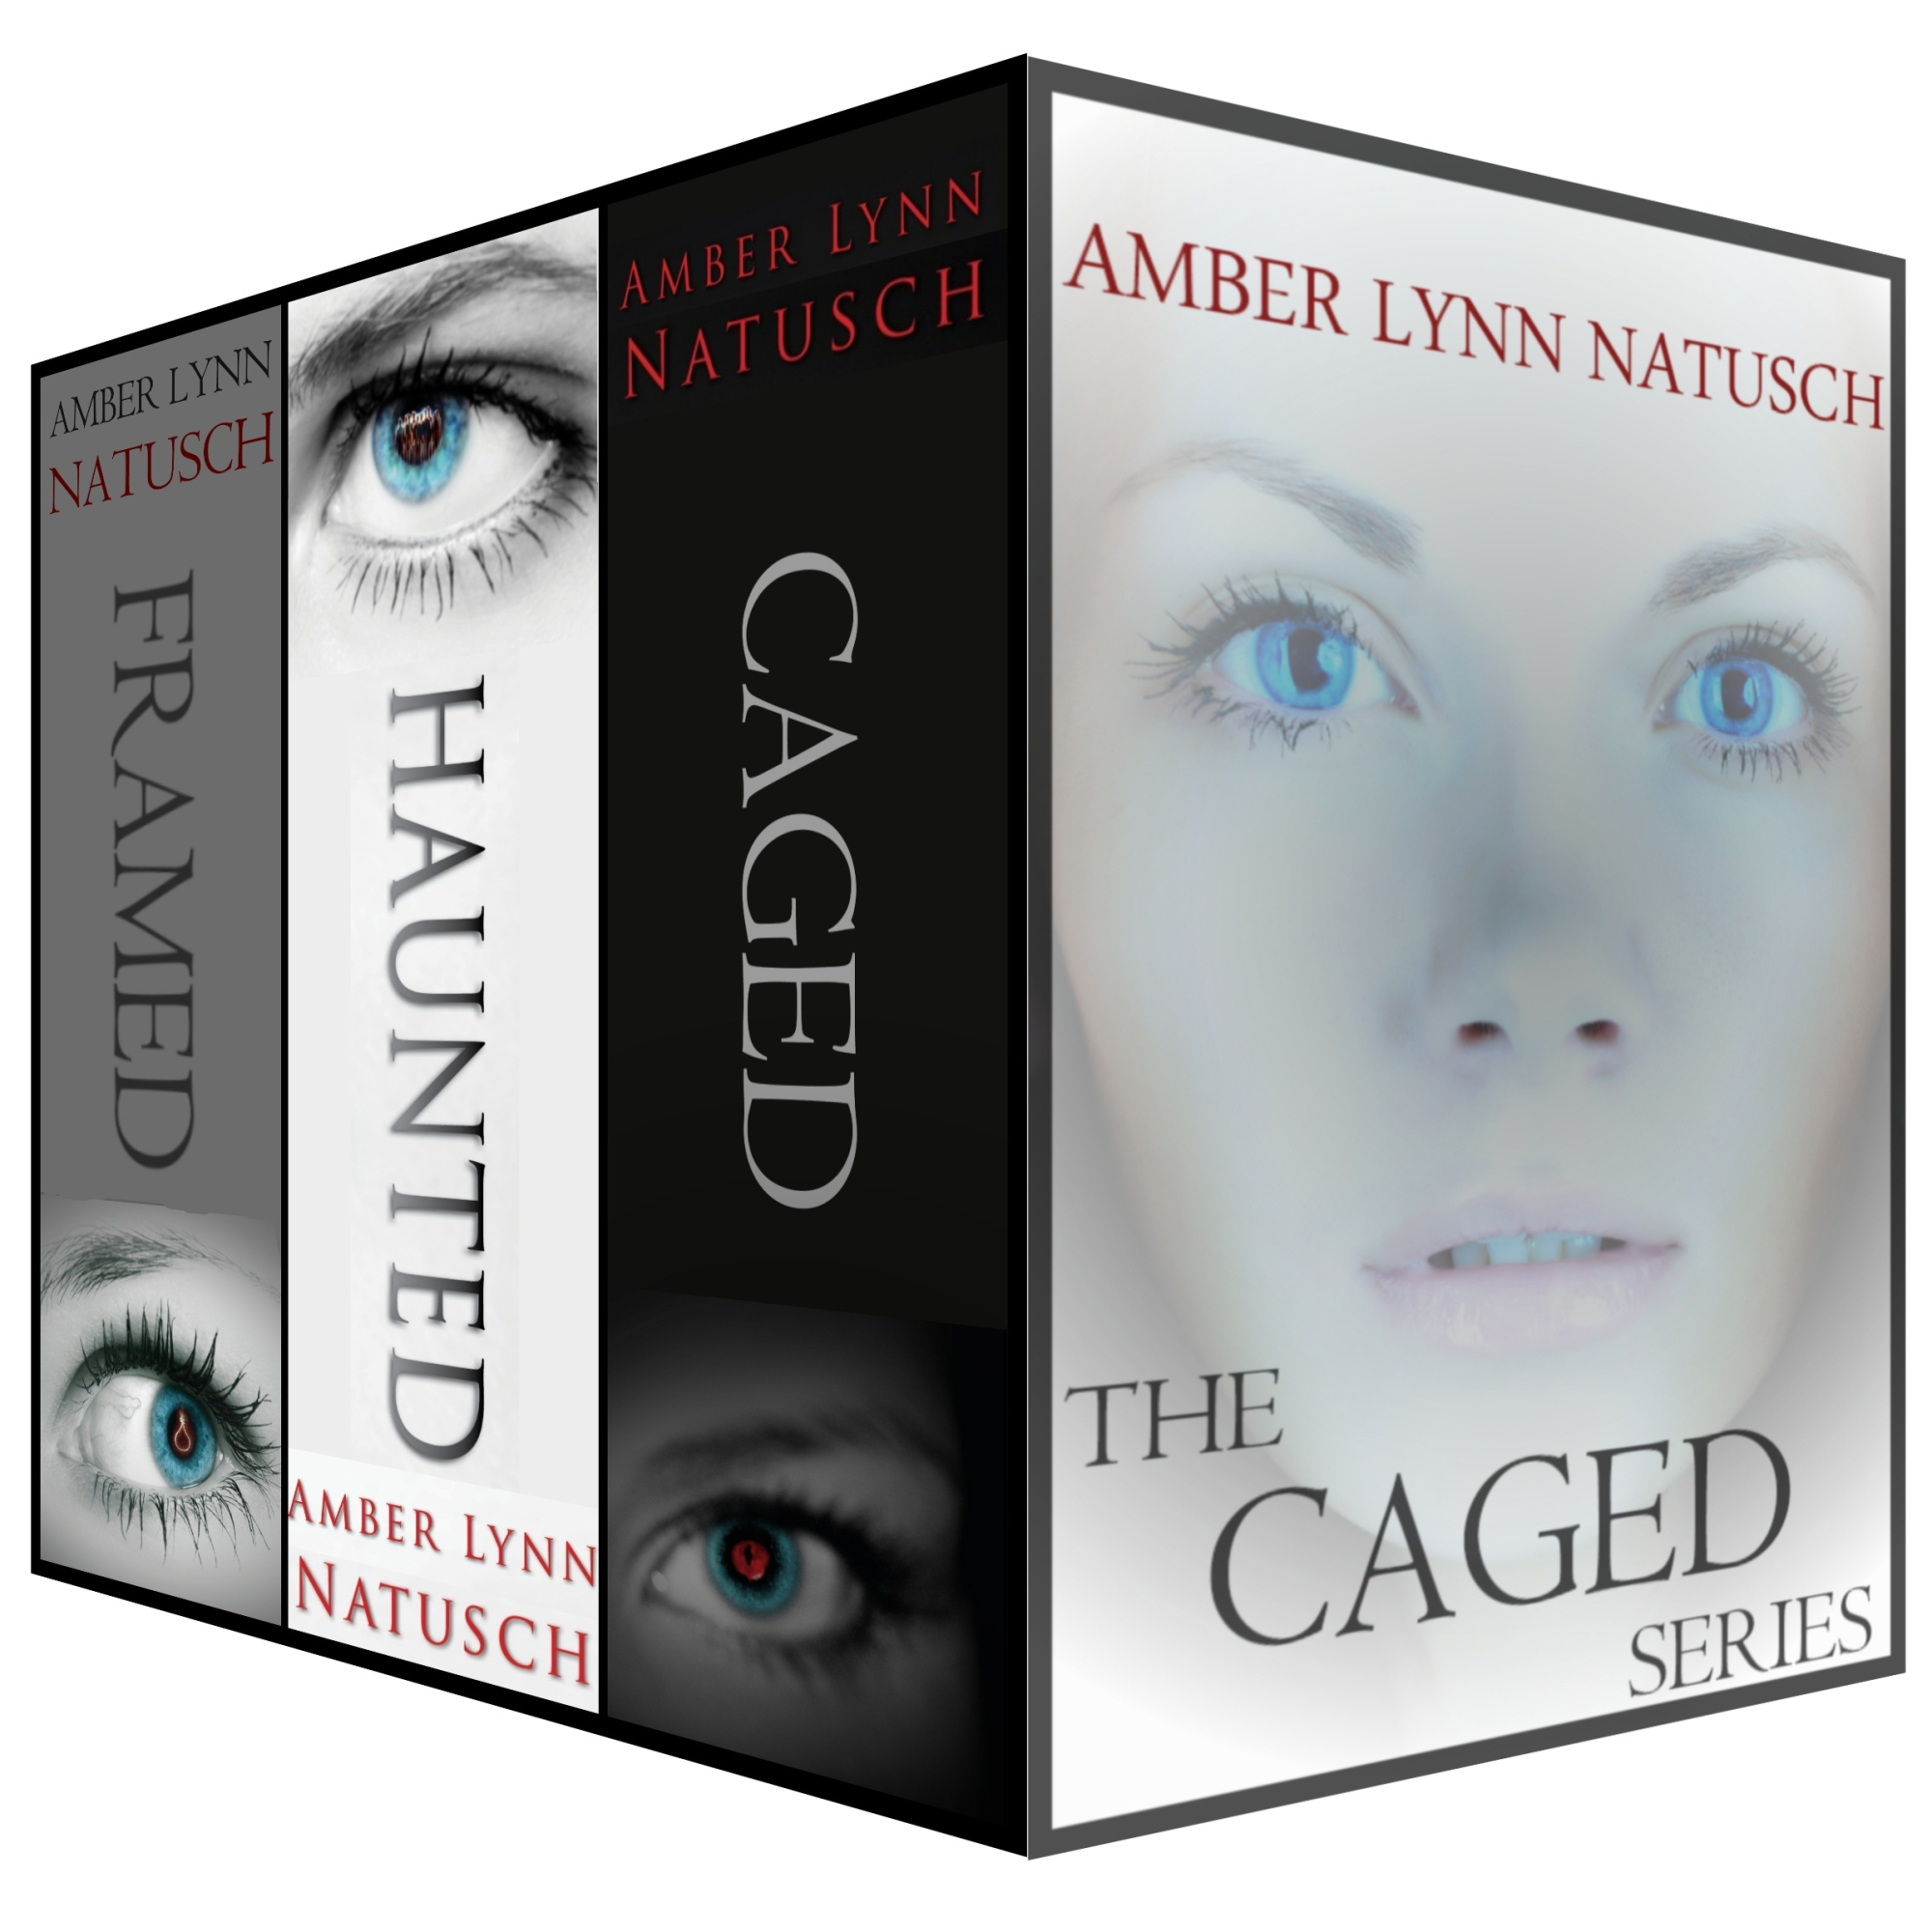 Amber Lynn Natusch - The Caged Series box set (books 1-3)